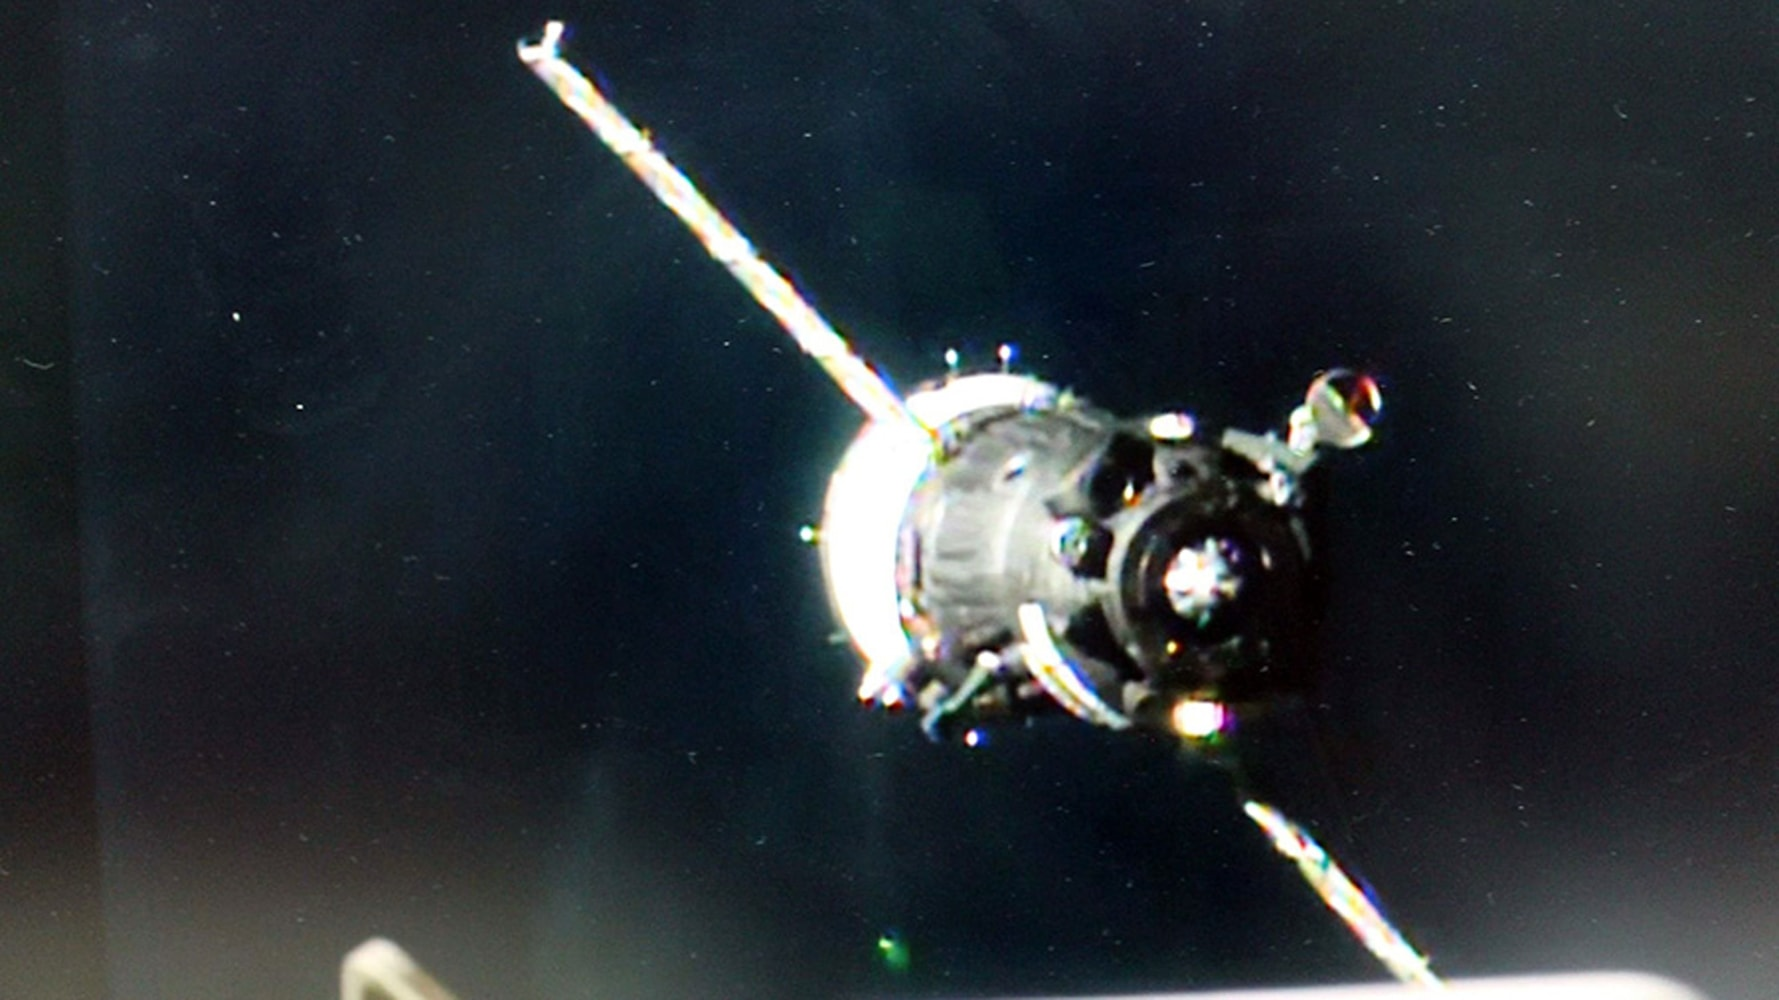 us space station viewing - photo #34